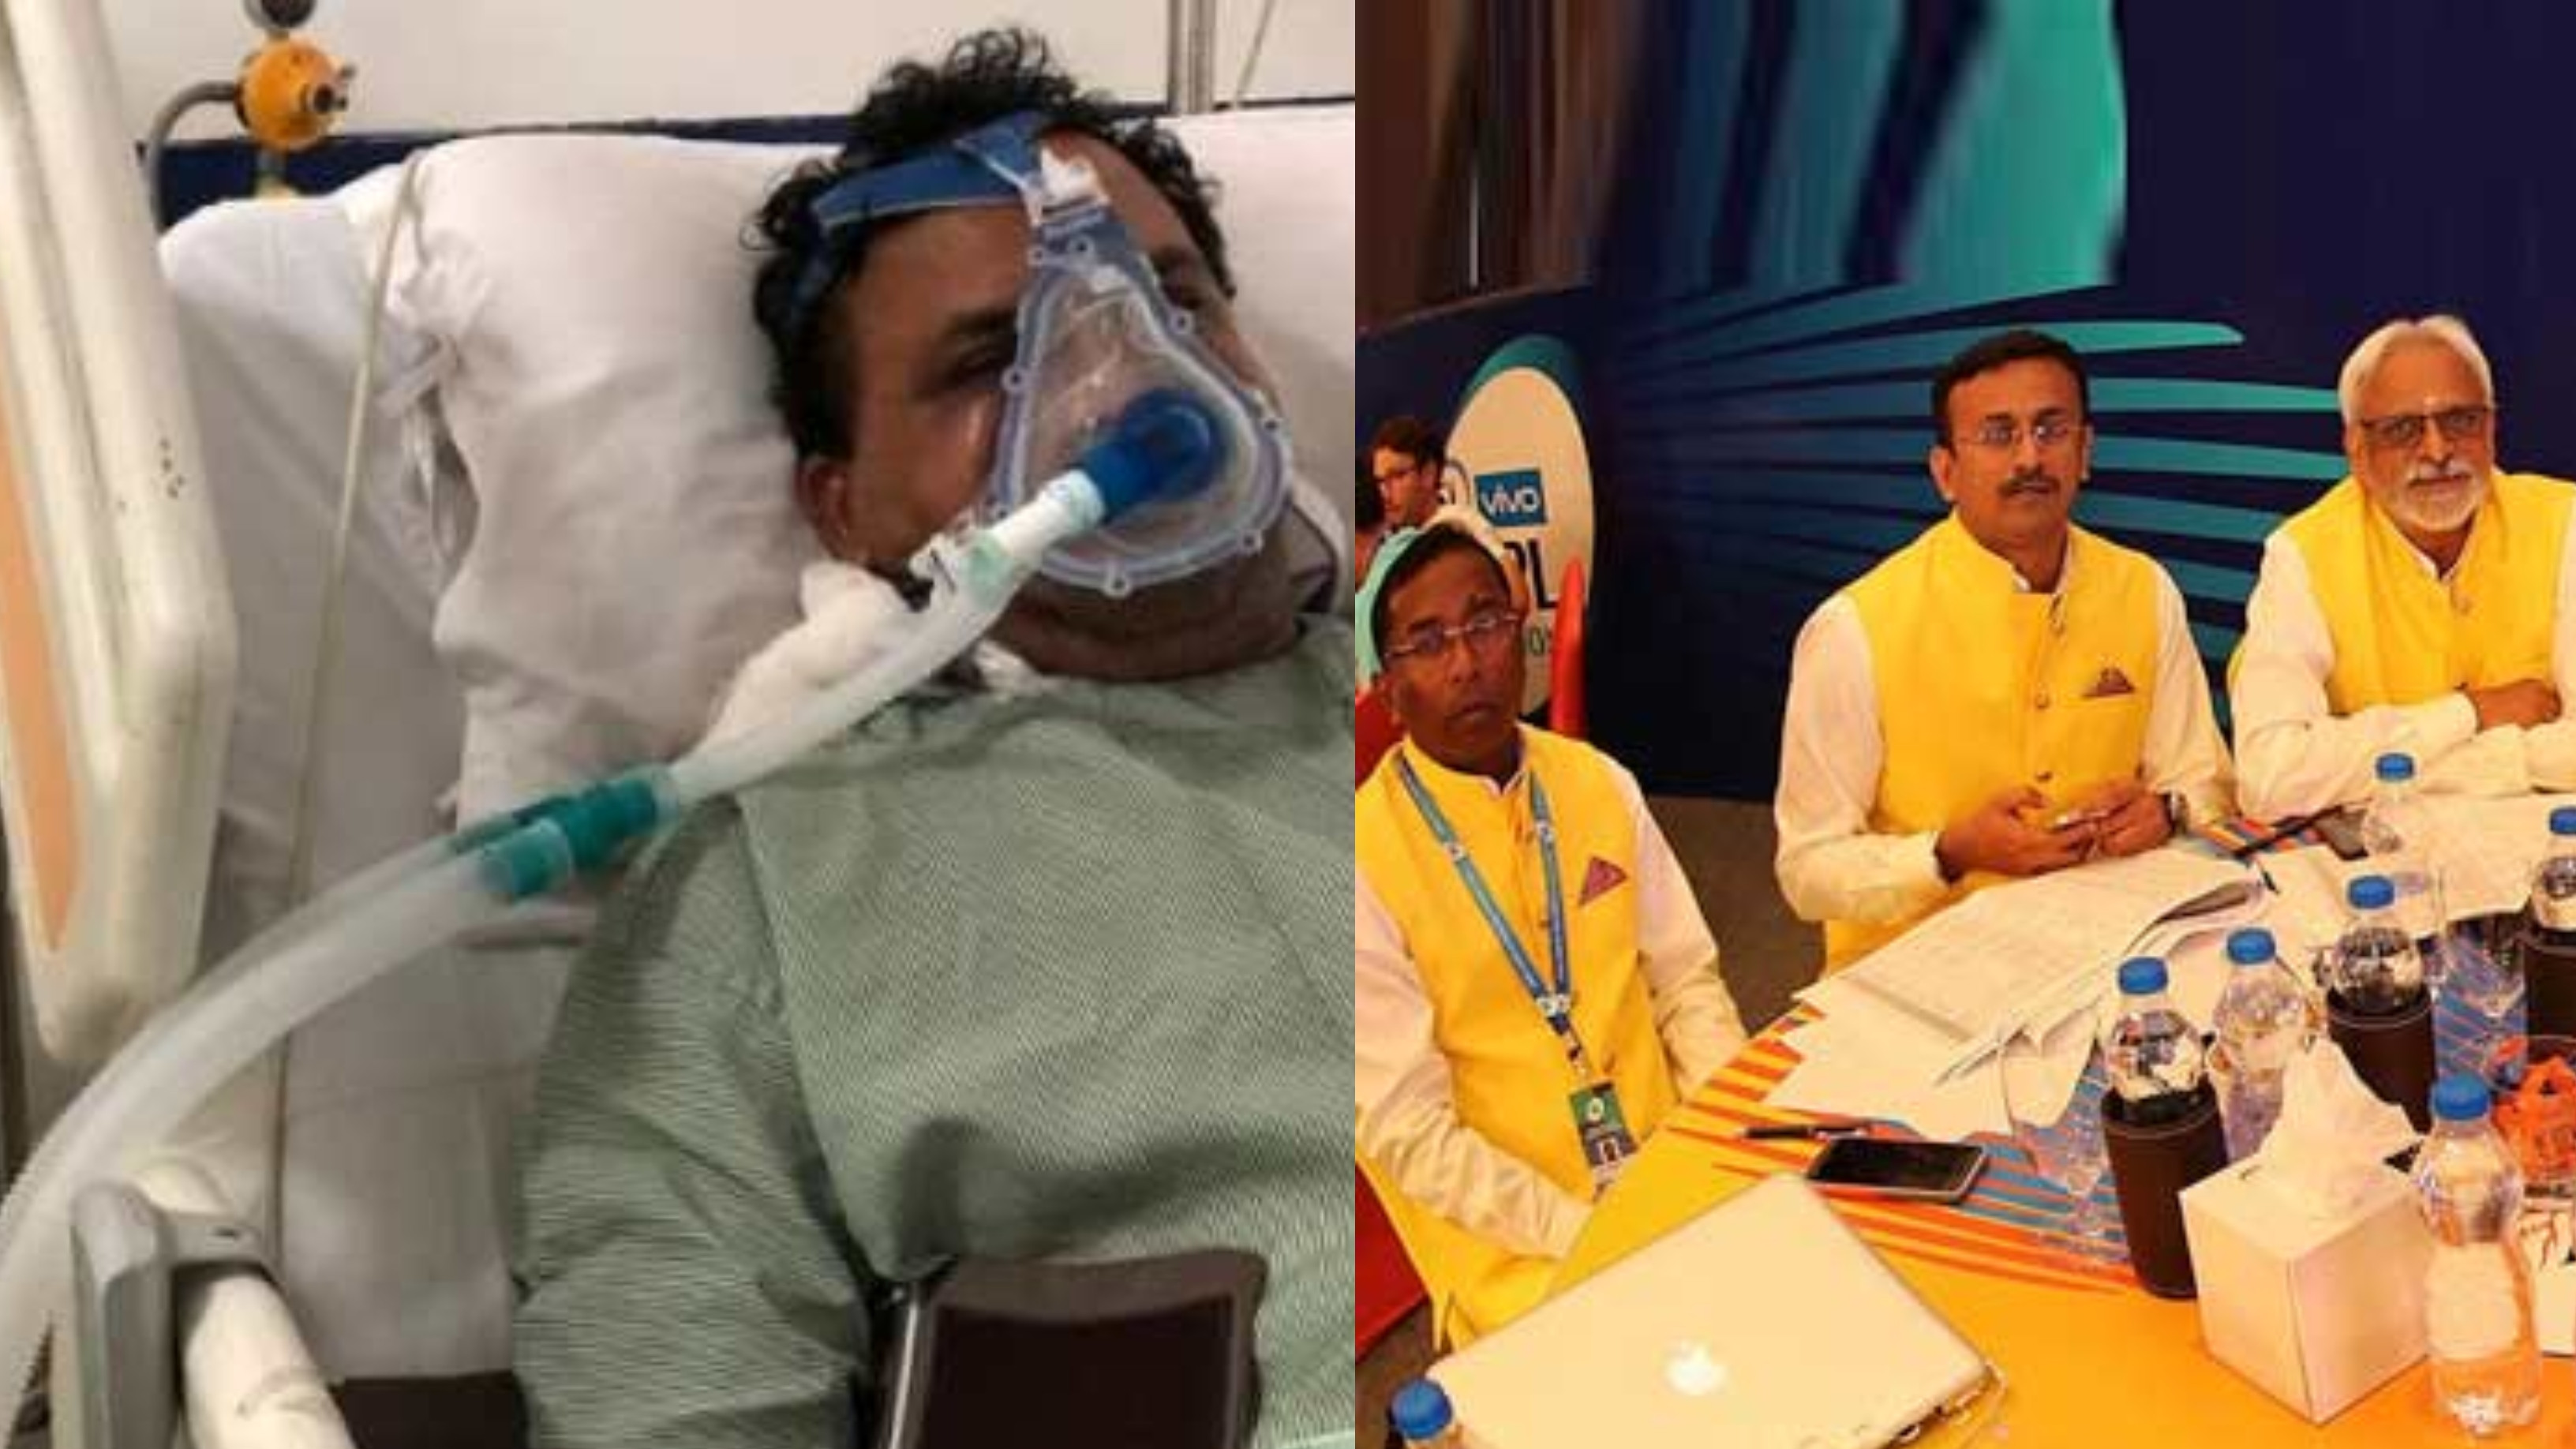 Chennai Super Kings contributes Rs 3 lakh towards the treatment of Jacob Martin